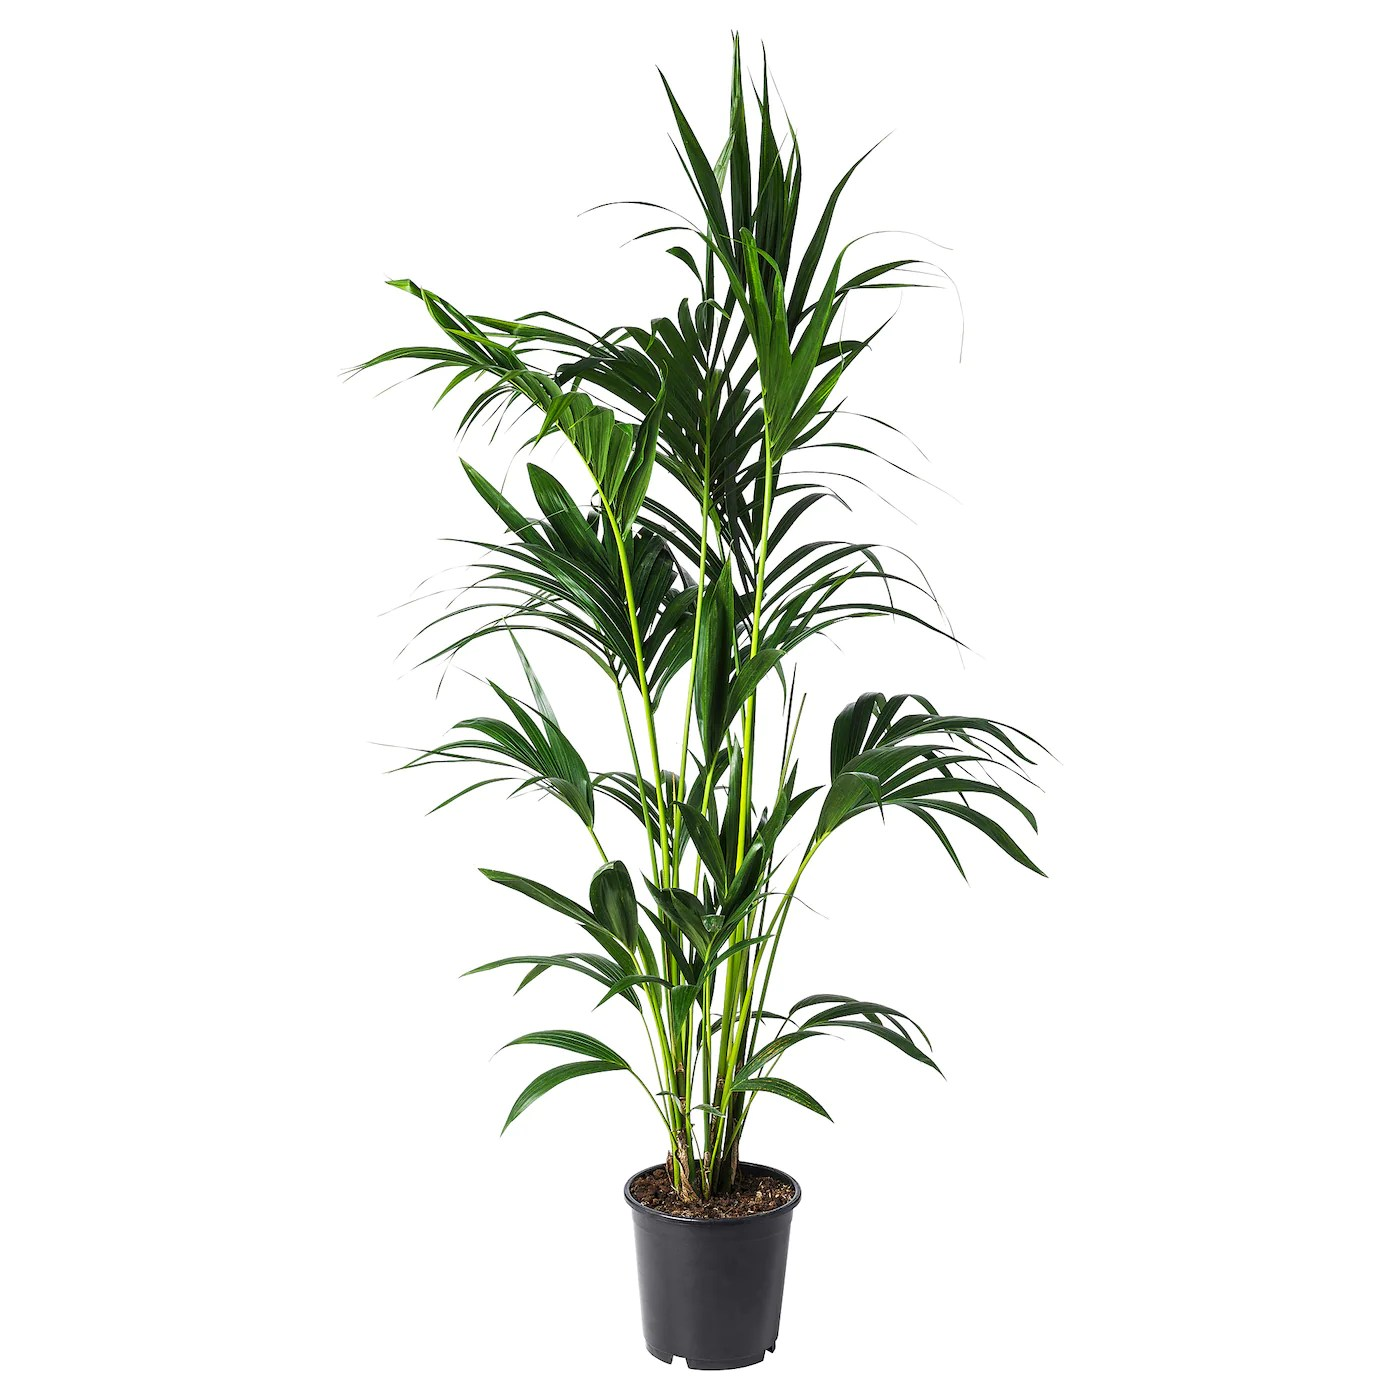 Ikea Palm Tree Howea Forsteriana Potted Plant Kentia Palm 24 Cm Ikea